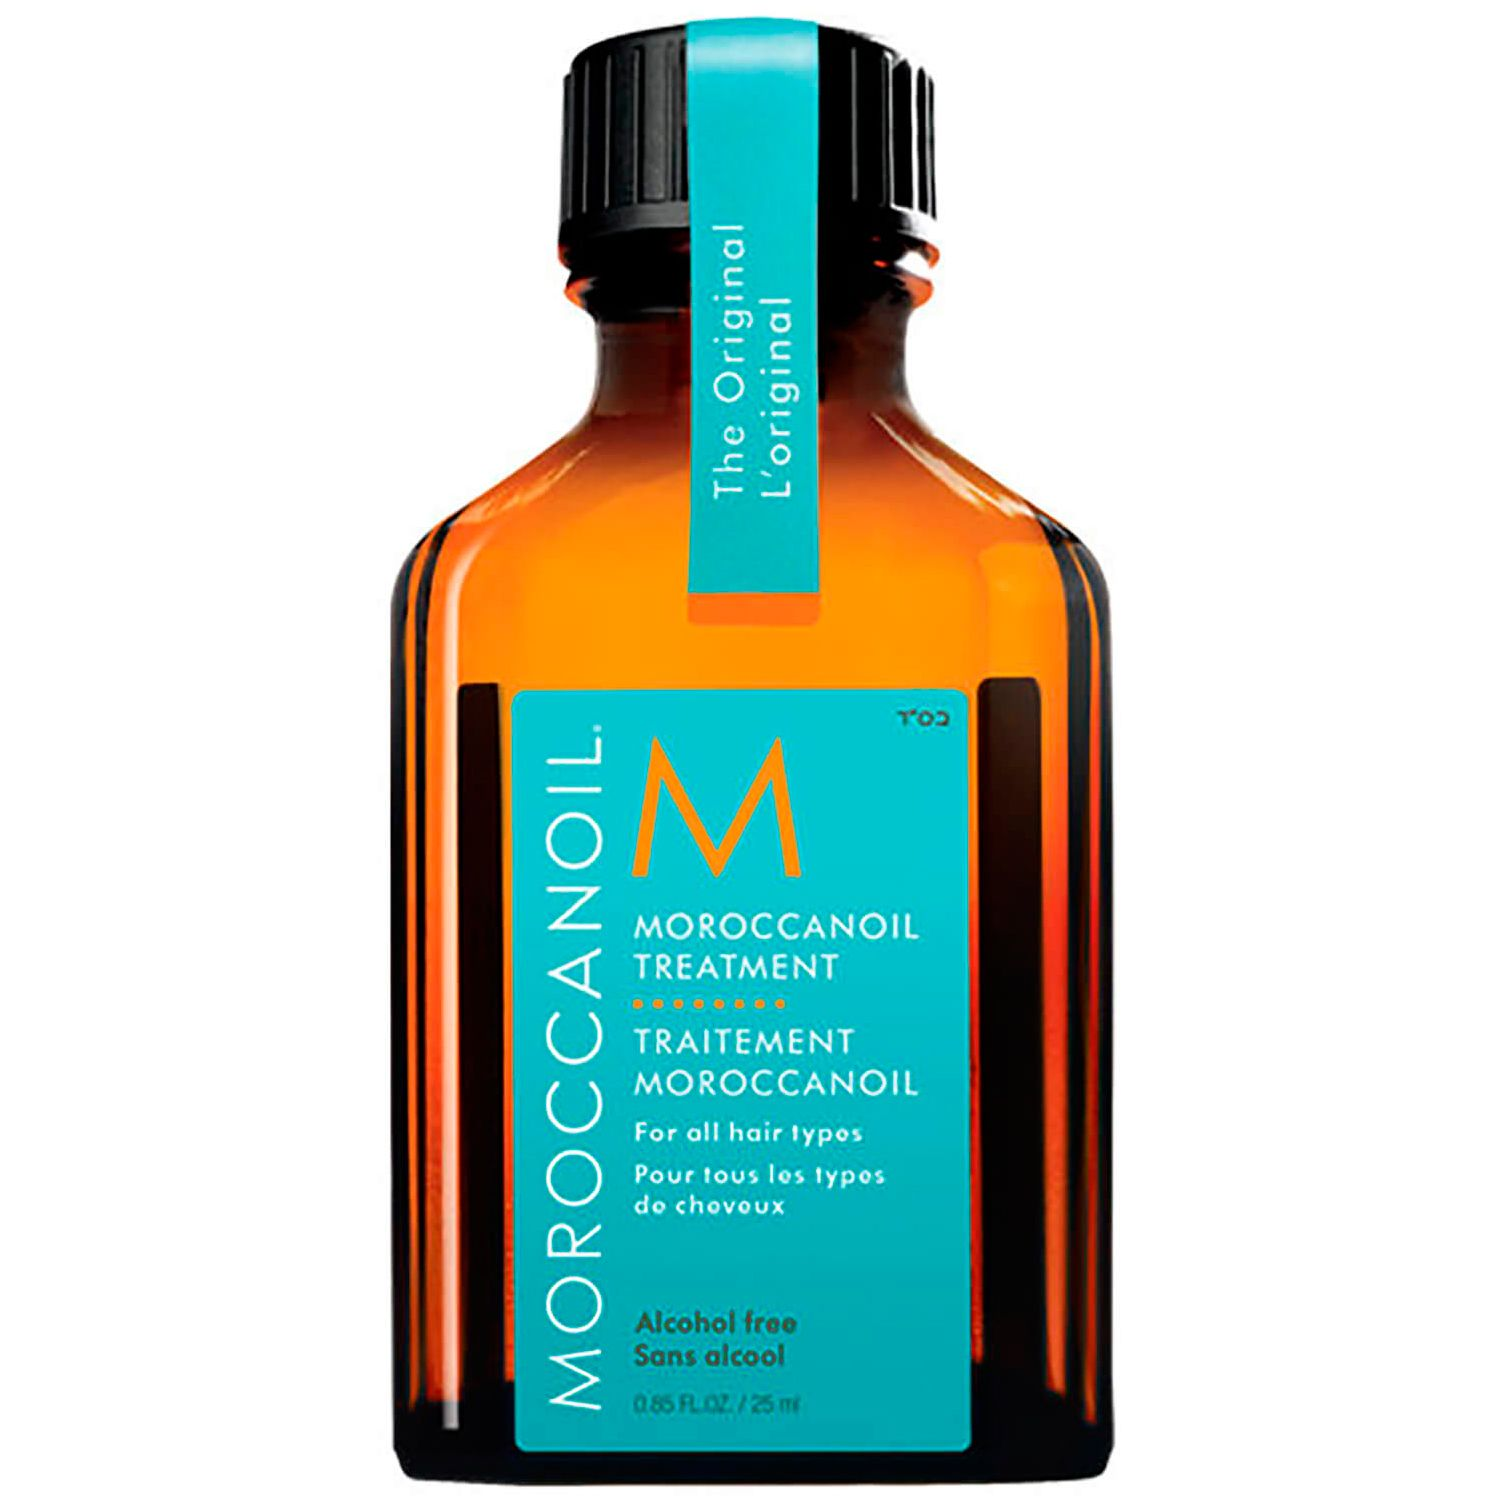 Argan oil: Best for dry or frizzy hair